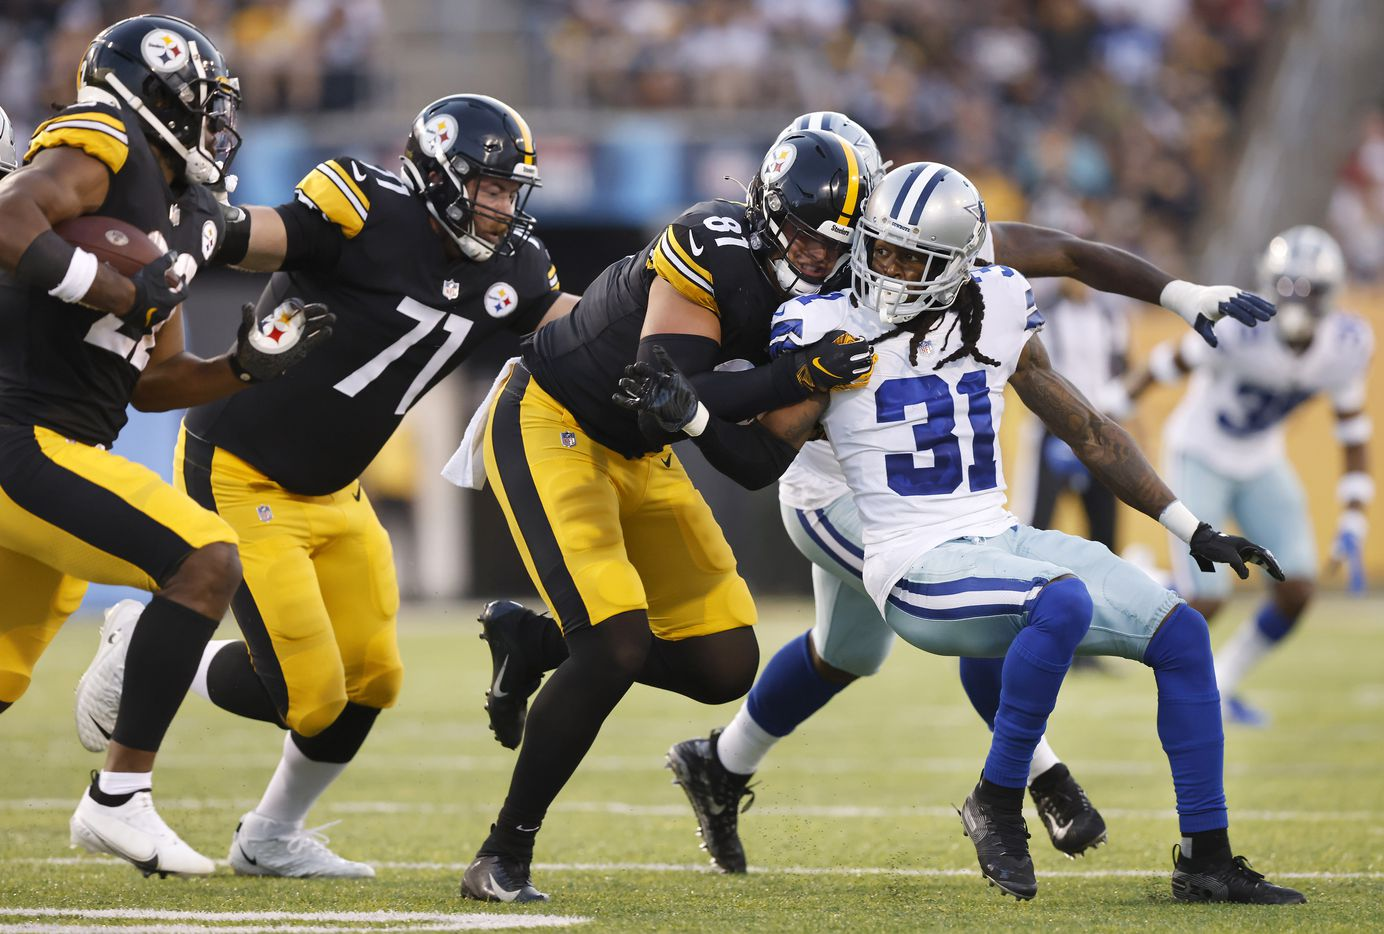 Dallas Cowboys cornerback Maurice Canady (31) fights for traction as he looks to tackle Pittsburgh Steelers running back Najee Harris (22) during the first quarter of their preseason game at Tom Benson Hall of Fame Stadium in Canton, Ohio, Thursday, August 5, 2021. He was being wrestled by Steelers tight end Pat Freiermuth. (Tom Fox/The Dallas Morning News)